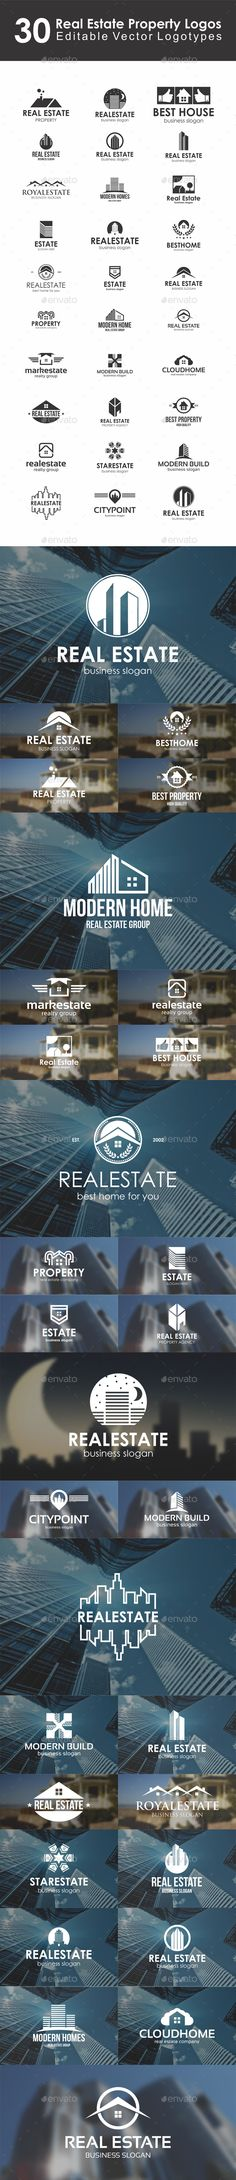 30 Real Estate Mortgage Property Logos / Logo Emblems / Personal Identity Logotype / Badges / Labels. – Editable Vector Logotypes Bundle / Collection. Professional and elegant logos suitable for construction, real estate, realty, mortgage, property business, building company, builders, hotel and resort business, etc. It stands out and instantly recognizable. Perfect for Property seller or buyers, properties management, rent service, Housing agents, mortgage or home developers.